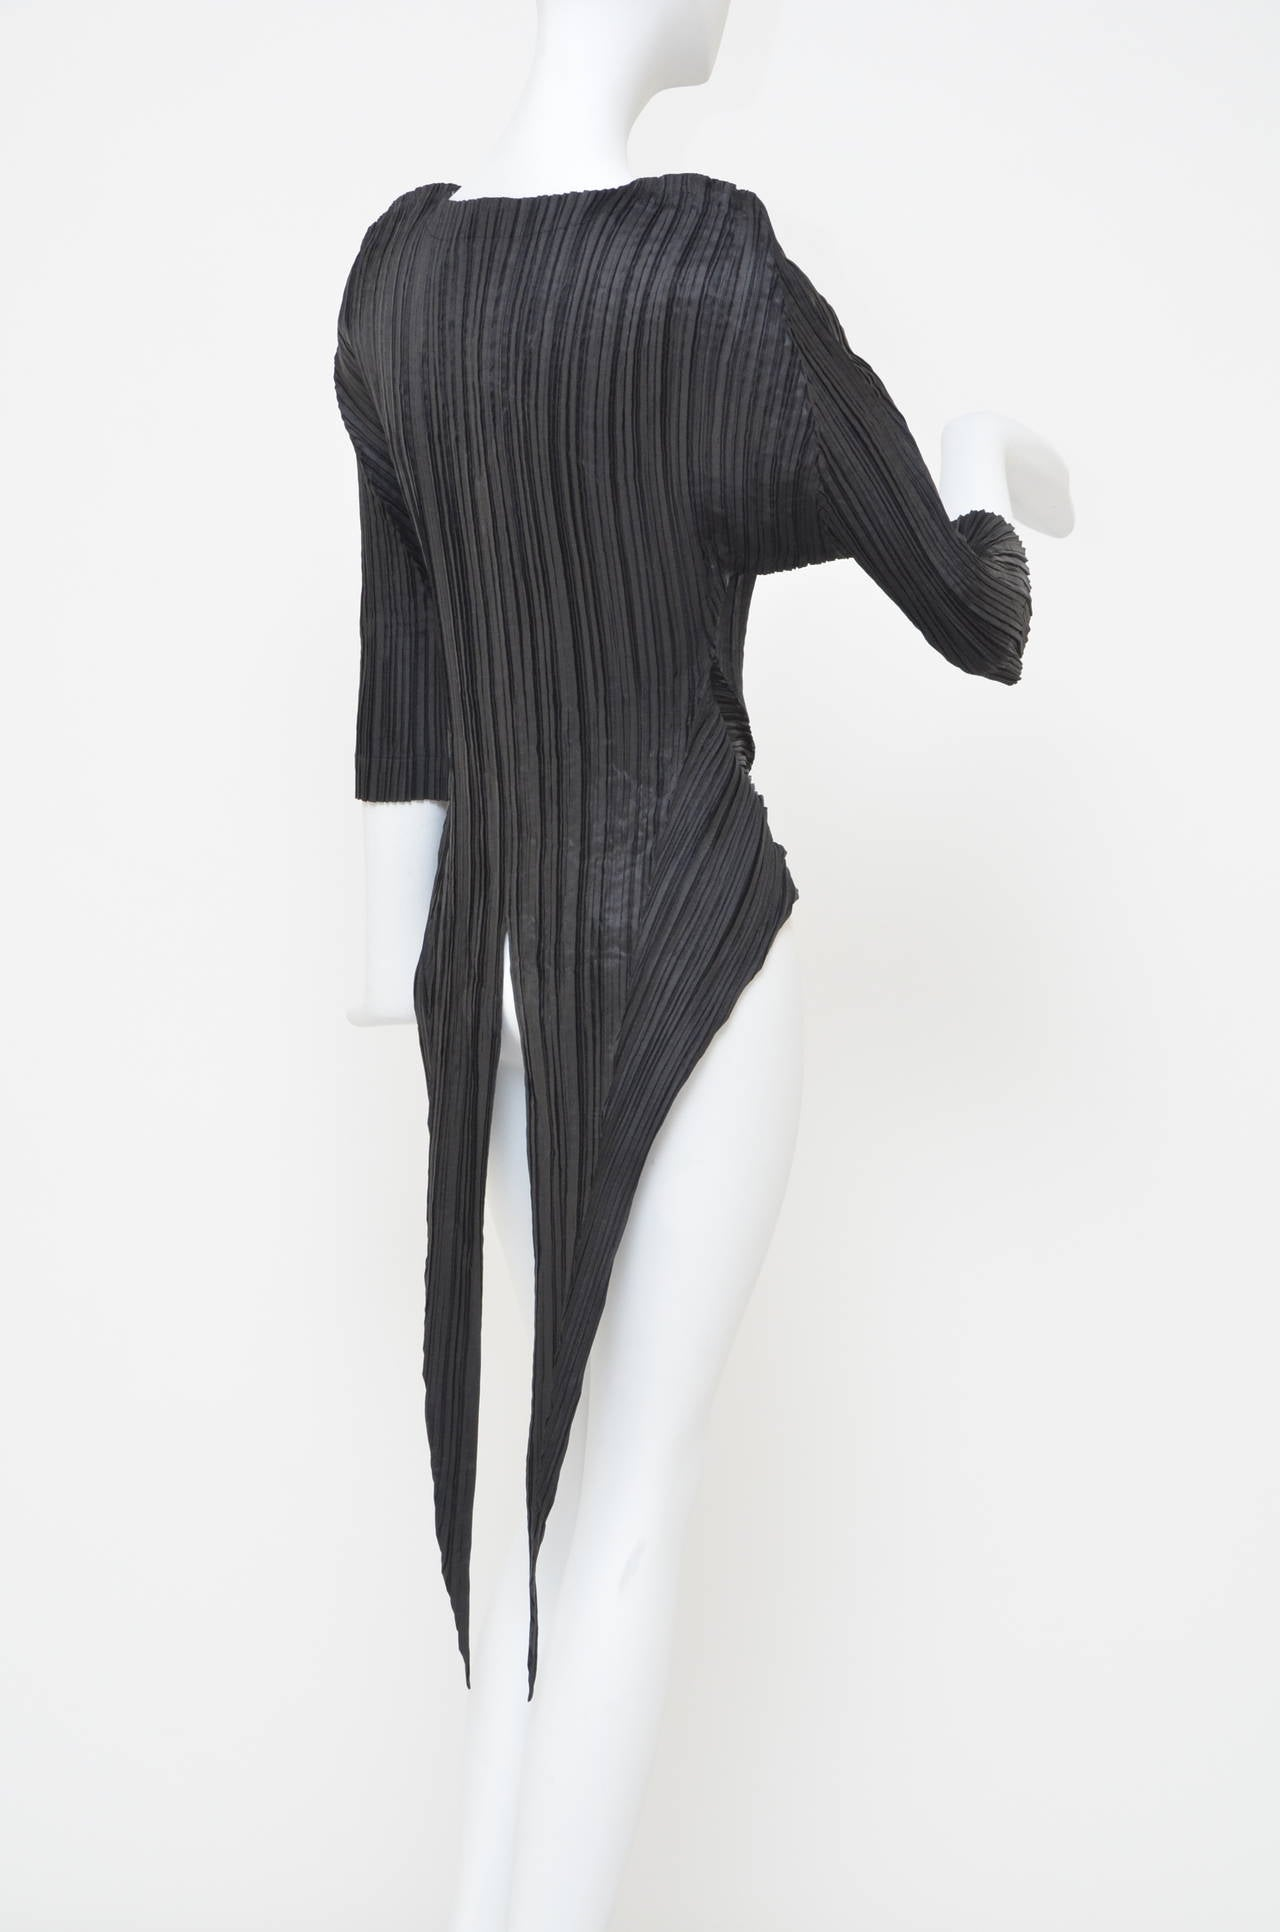 Black Issey Miyake  Origami Pleat  Top With Tails 1989 For Sale